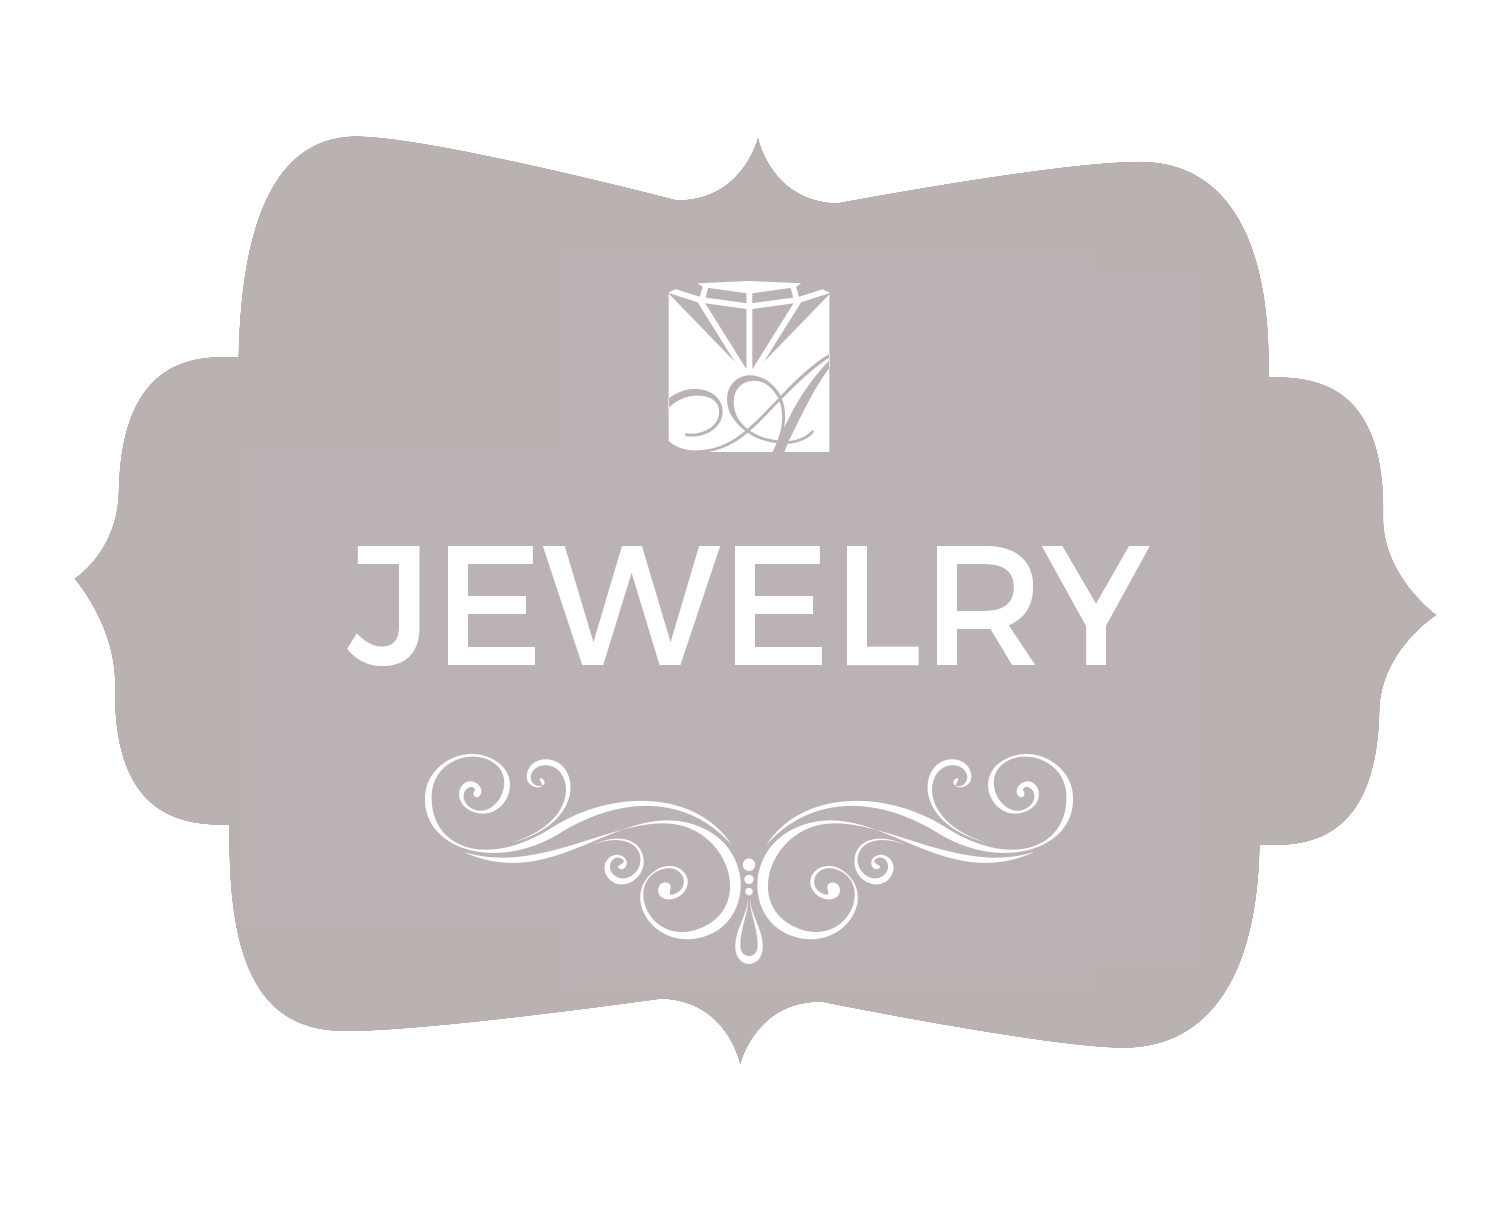 Jewelry_H.png